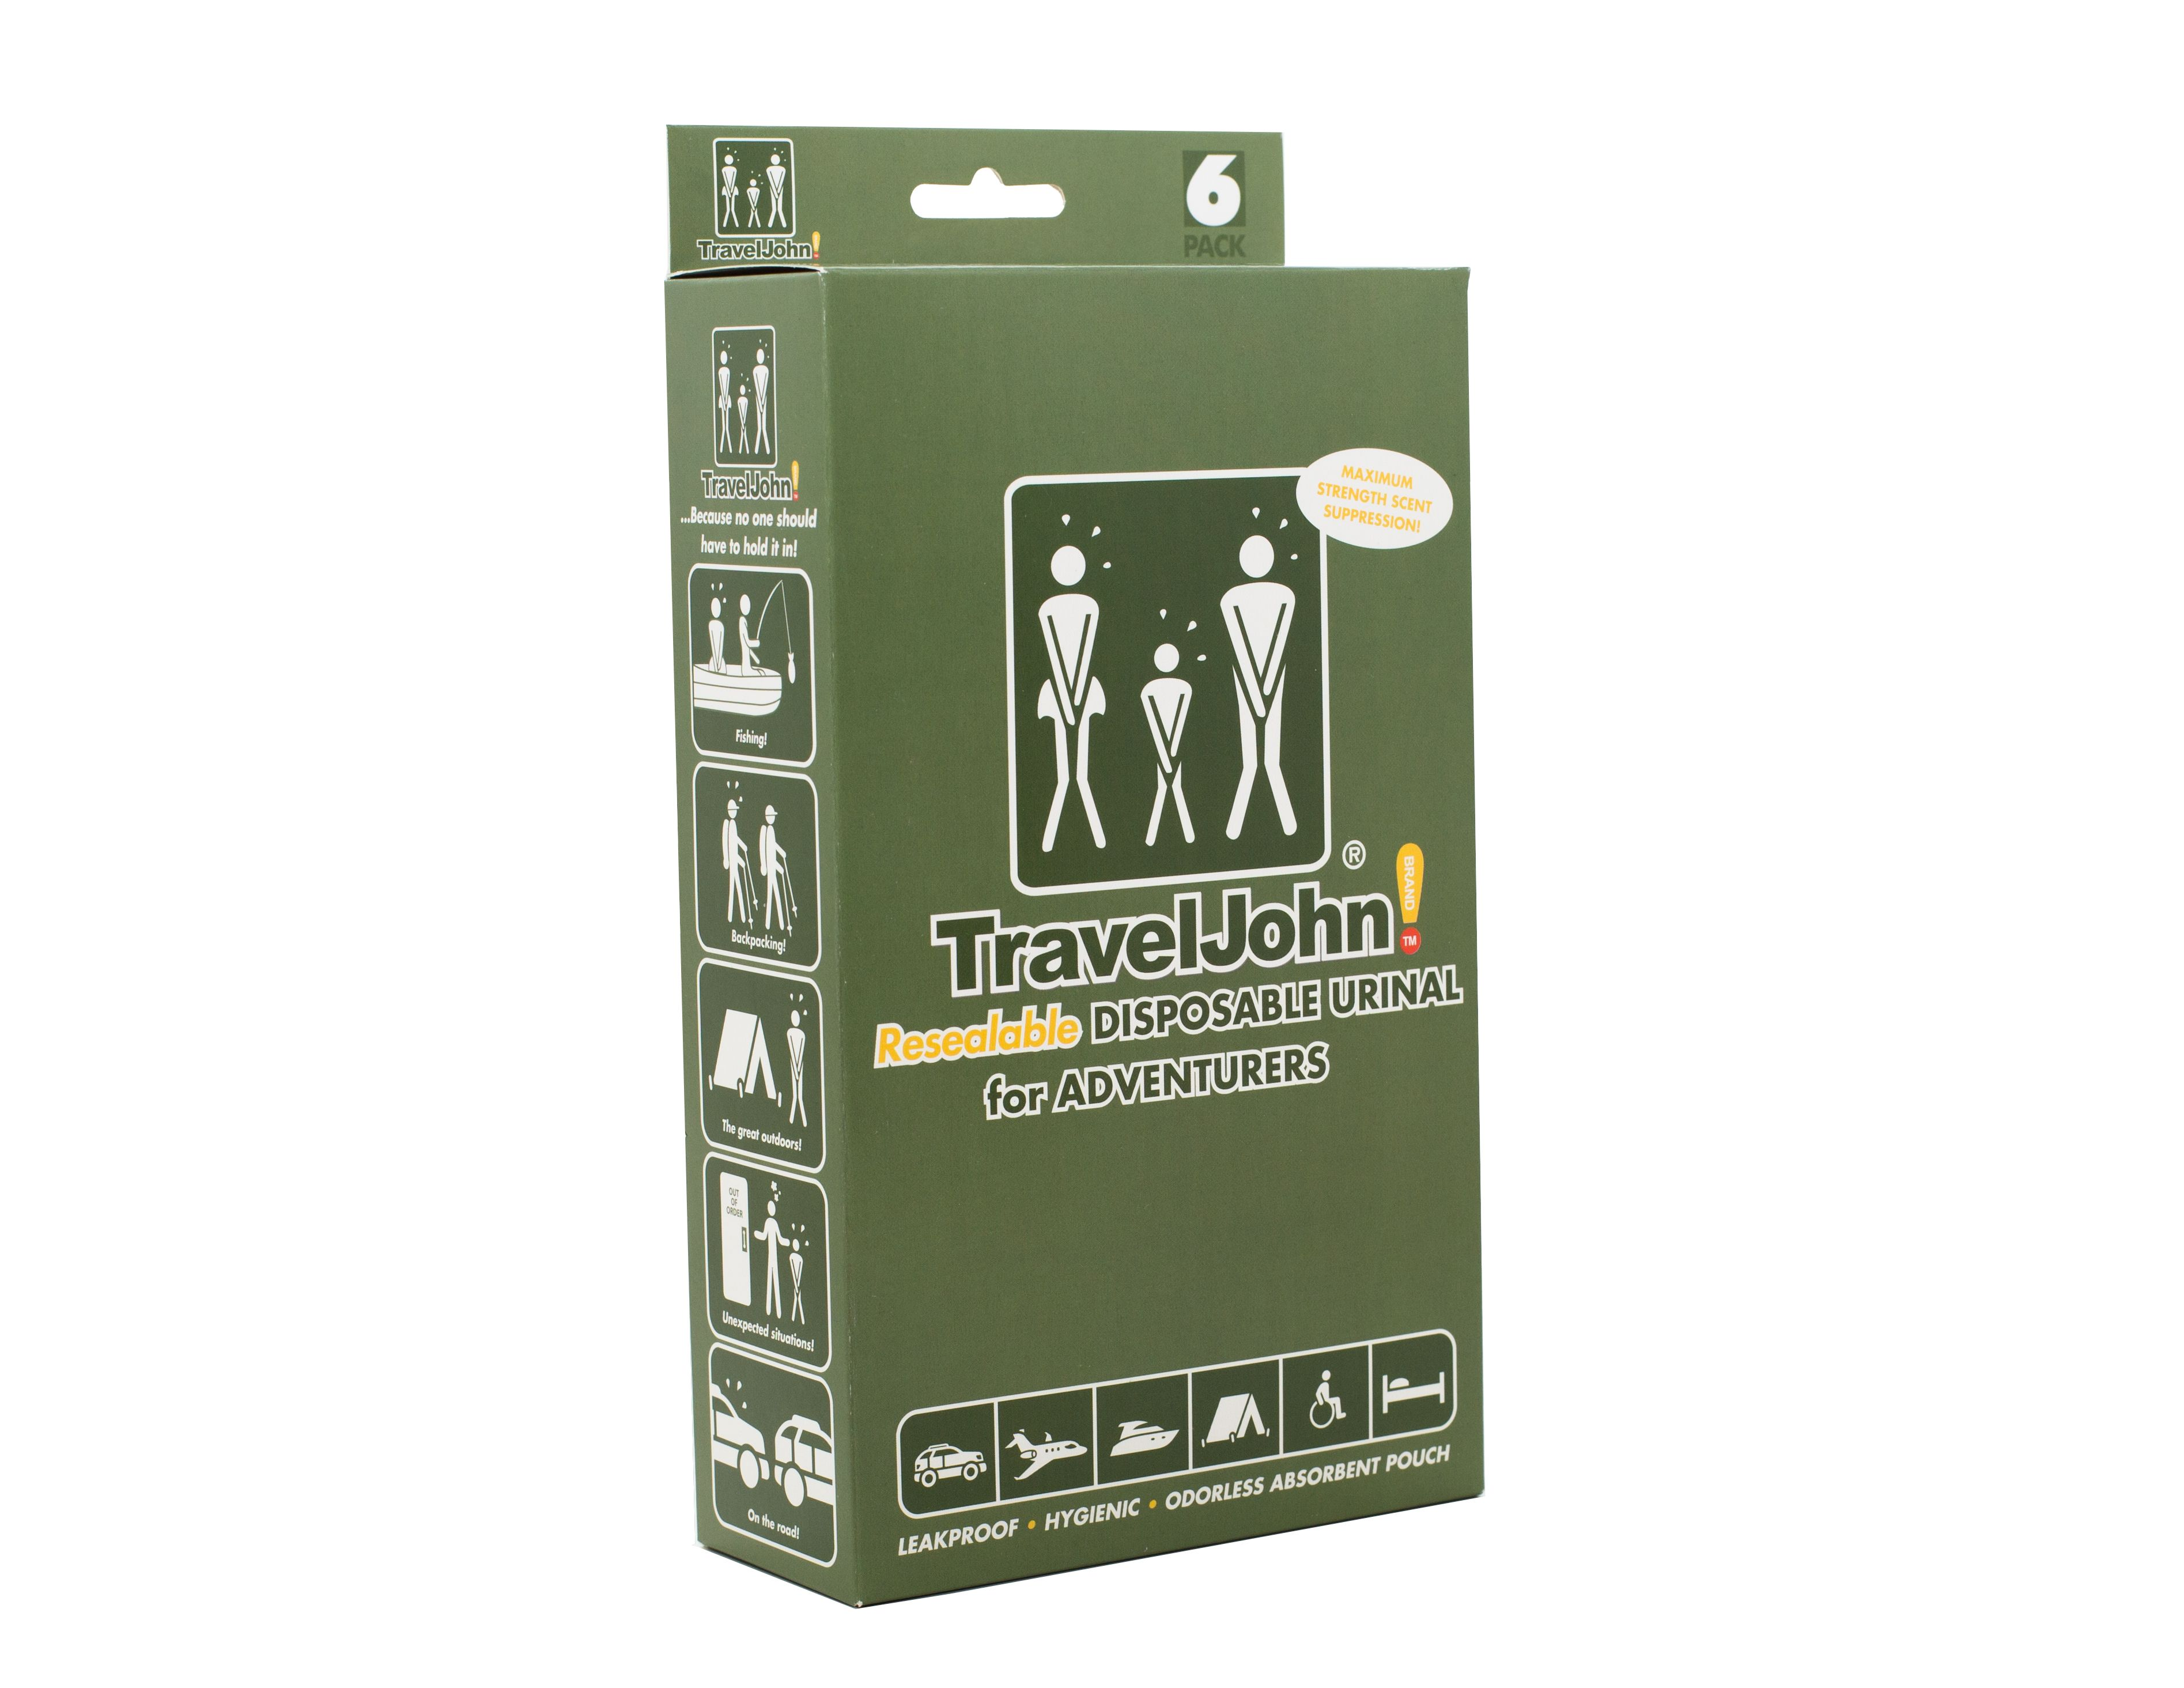 Hygienic Portable Urinals for Traveling Non-Toxic Odorless Travel Jane Emergency Bathroom Kit for Women Hiking 1pk - 18 Count Camping Disposable